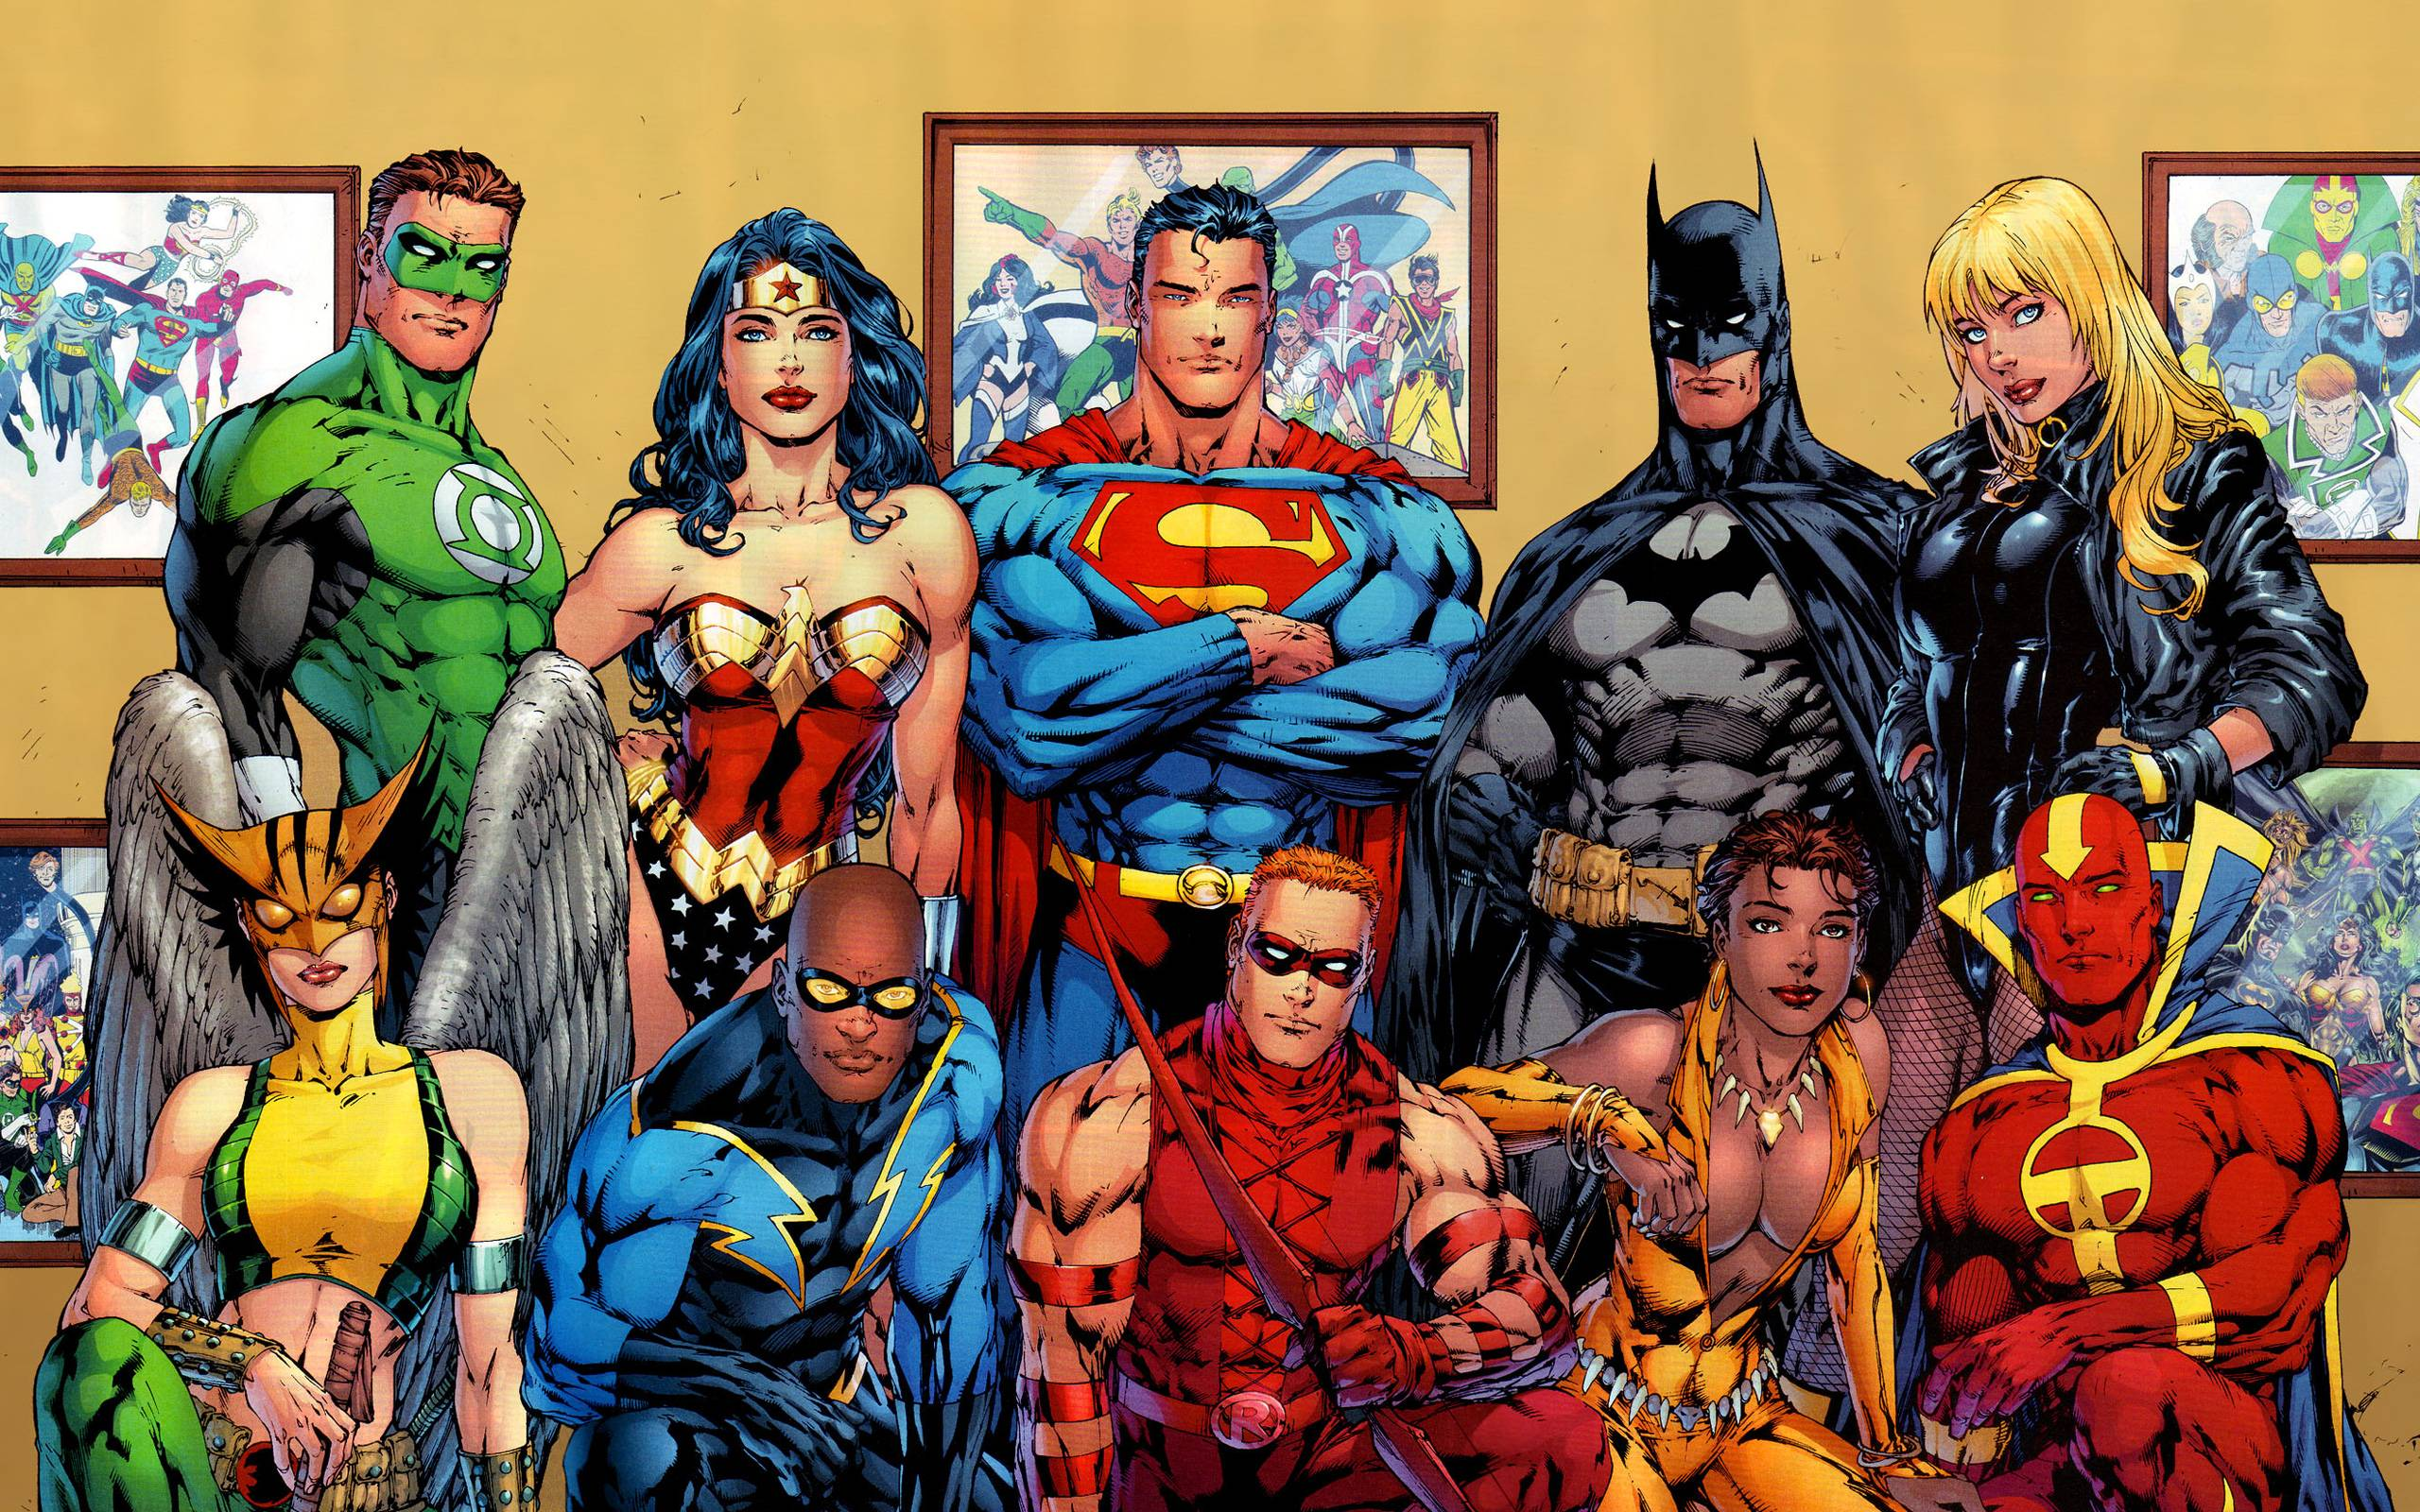 Justice League Wallpapers 19 264696 Image HD Wallpapers